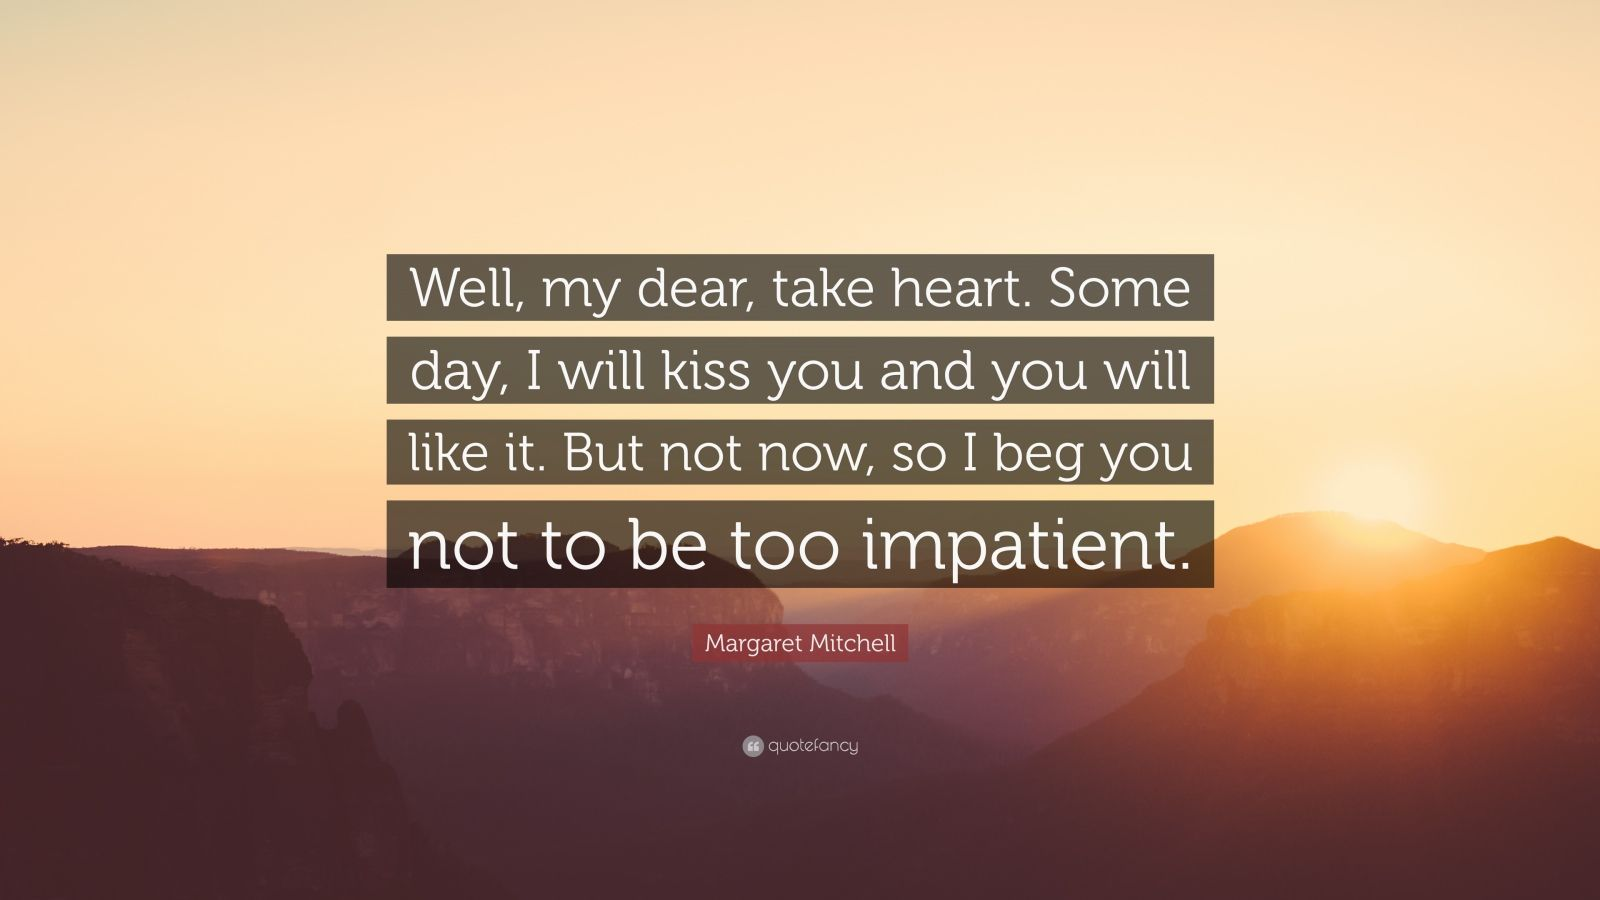 """Margaret Mitchell Quote: """"Well, my dear, take heart. Some day, I will kiss you and you will like it. But not now, so I beg you not to be too impatient."""""""